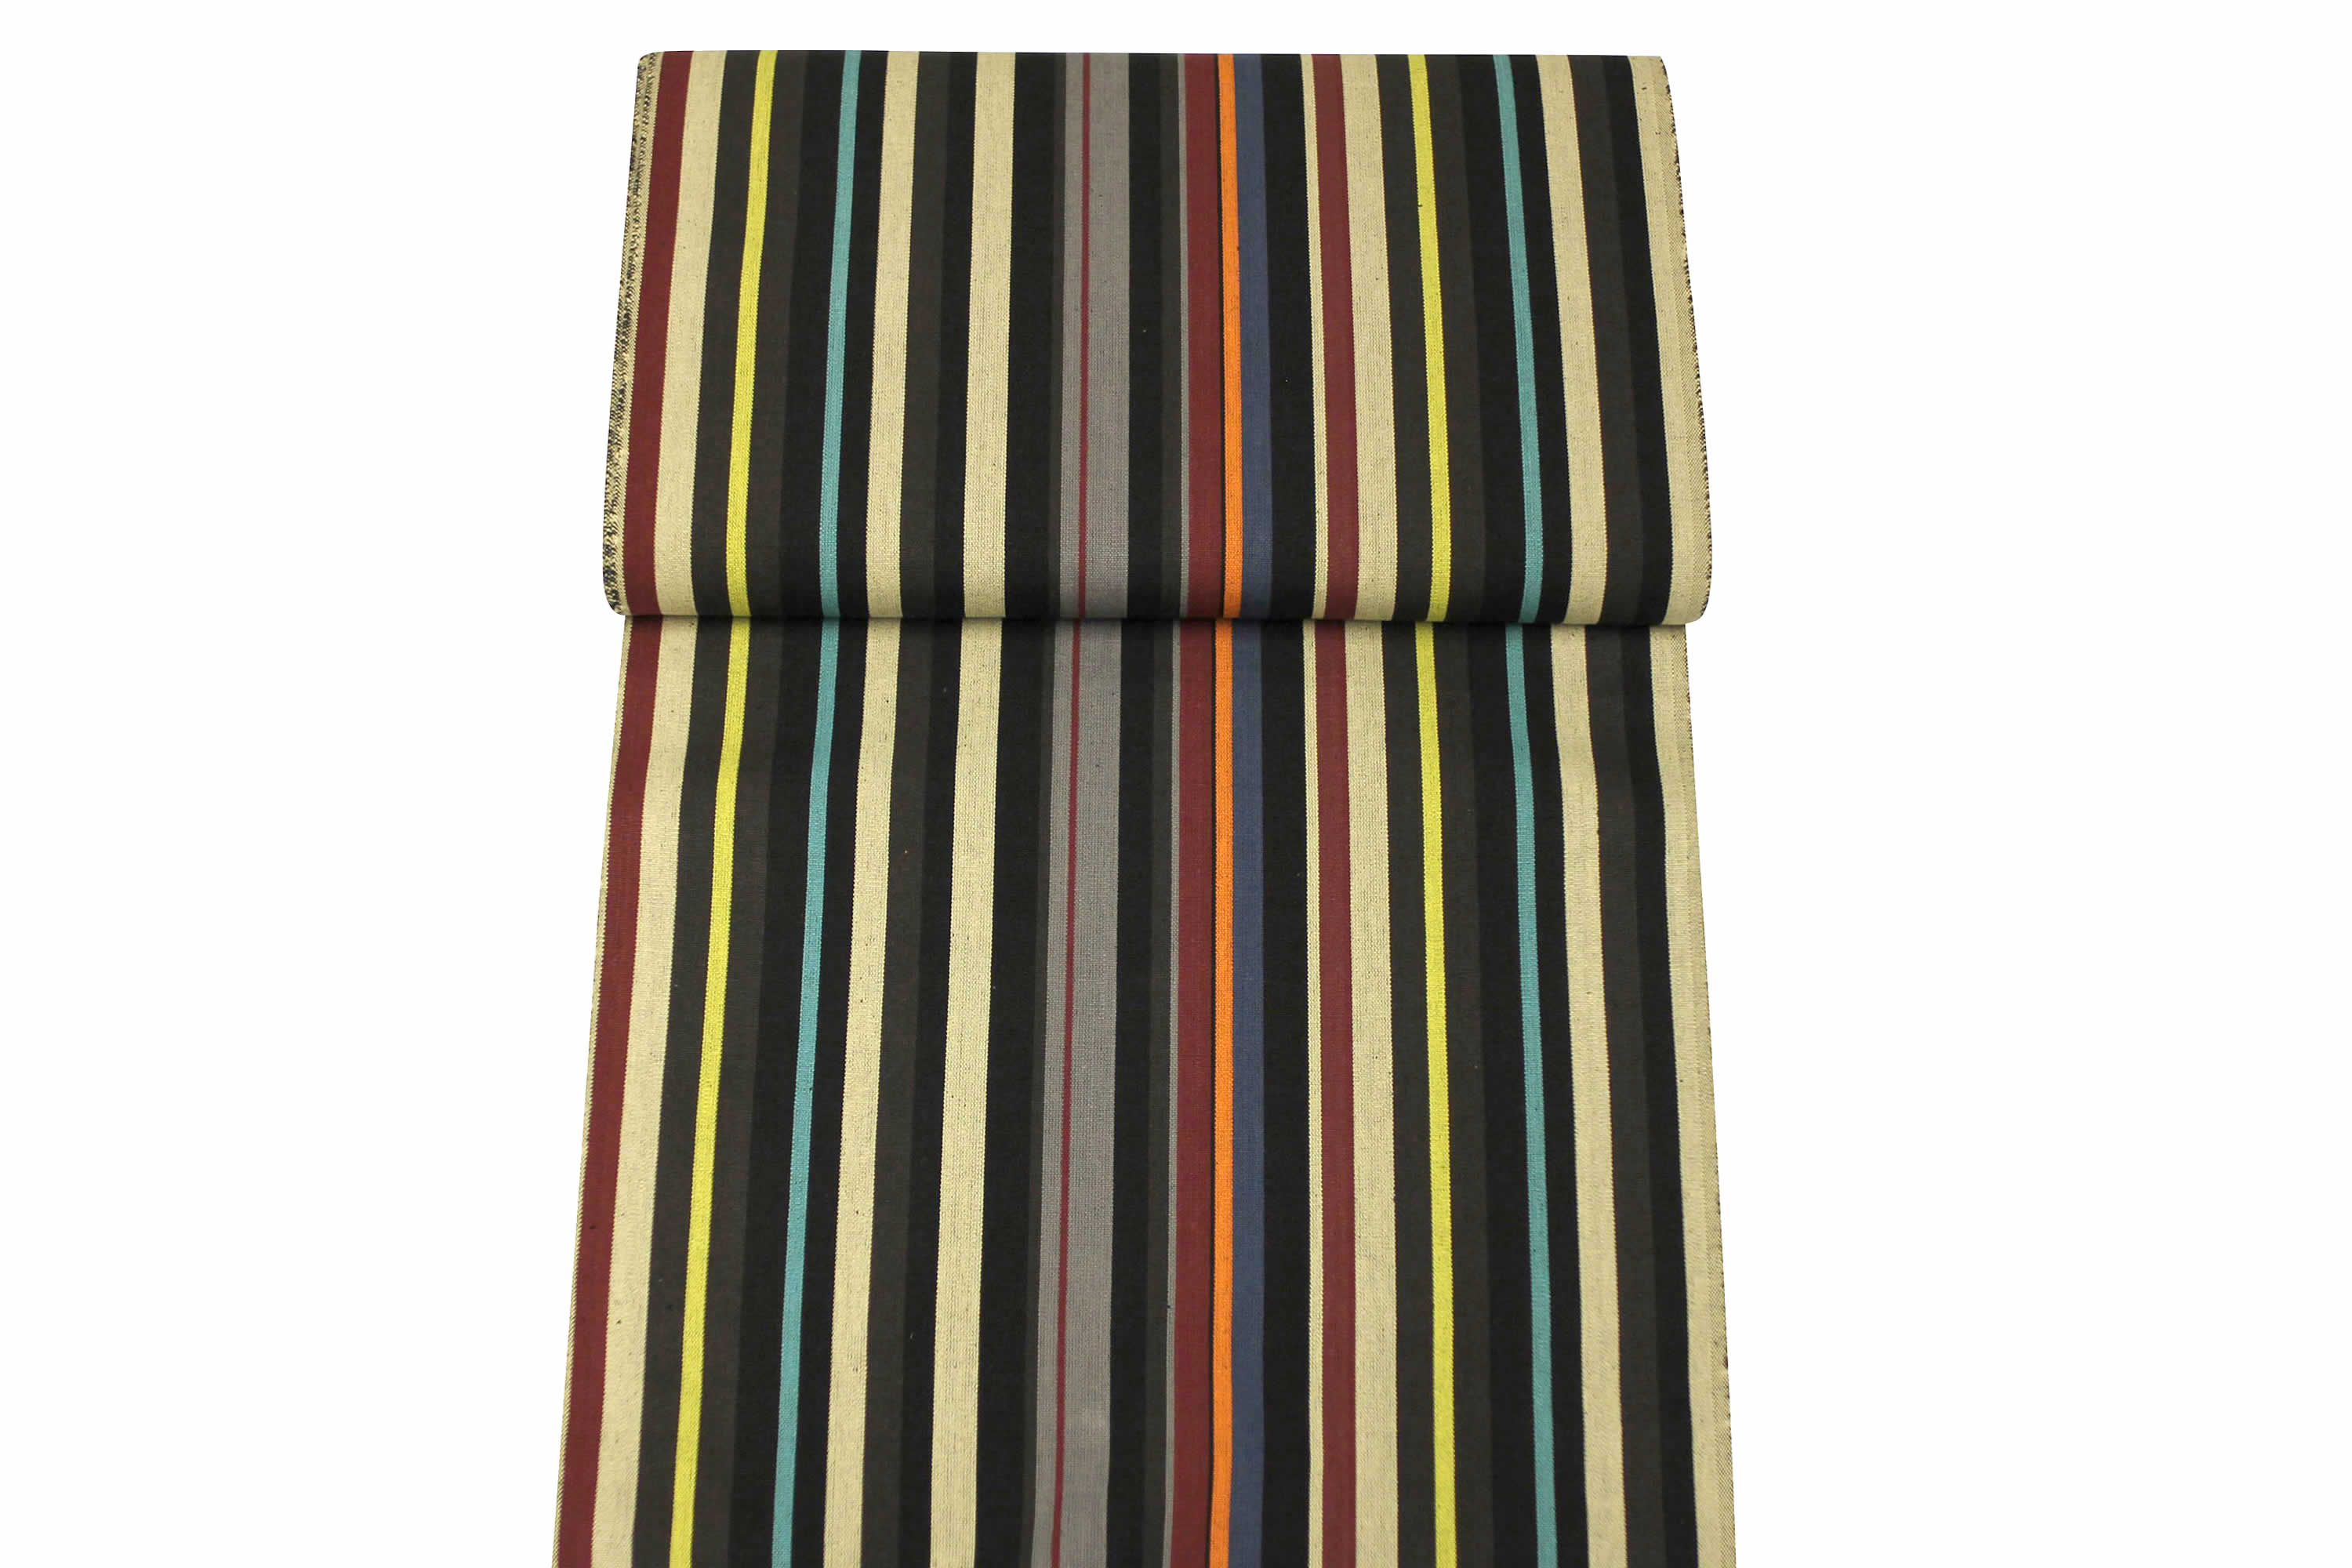 Black Striped Deckchair Canvas Fabric